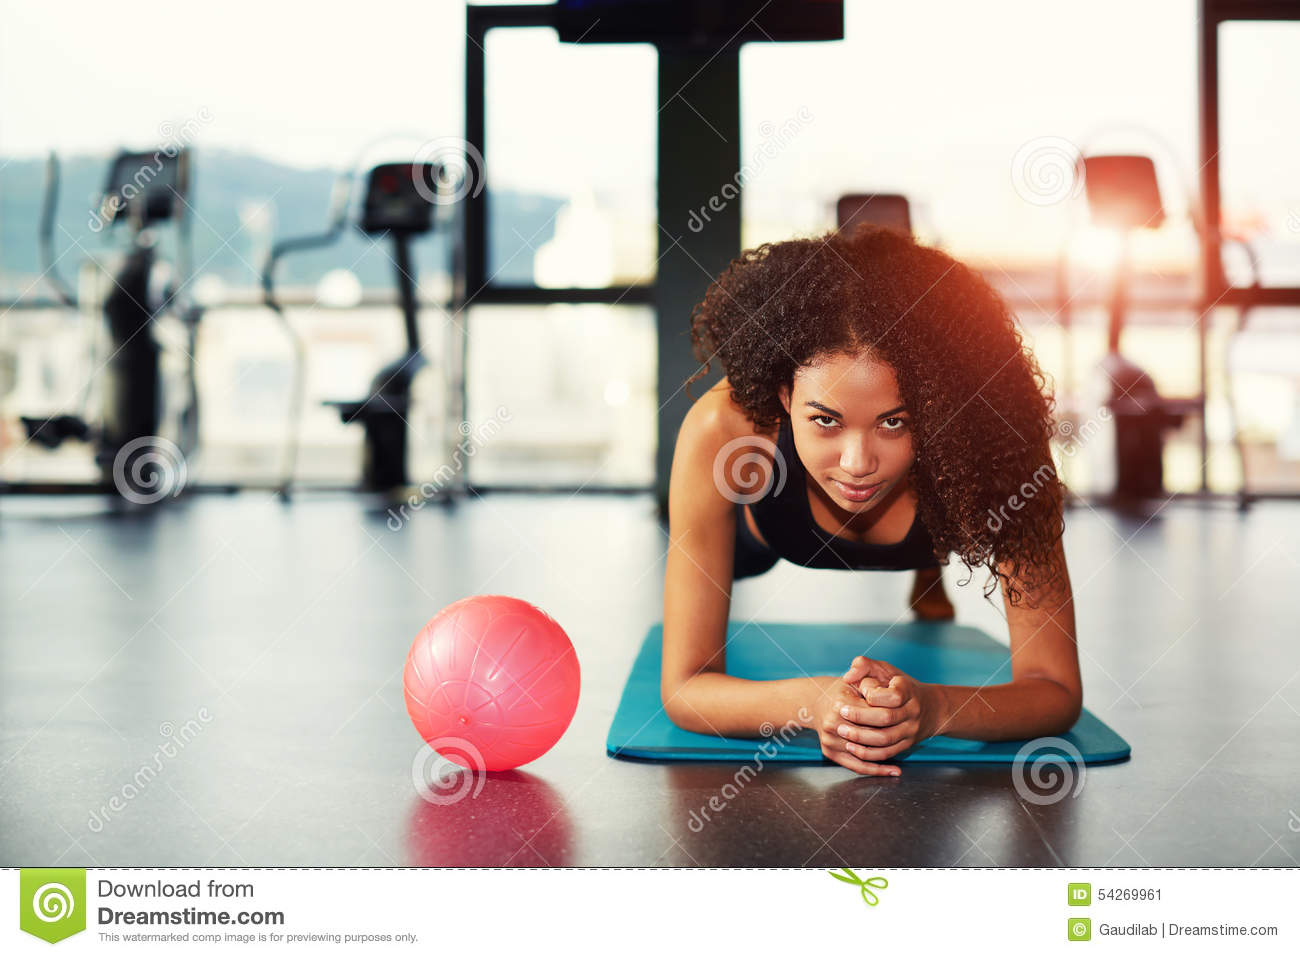 Download Attractive Woman Working Out With Abdominal Muscles At Gym Stock Image - Image of curly, black: 54269961